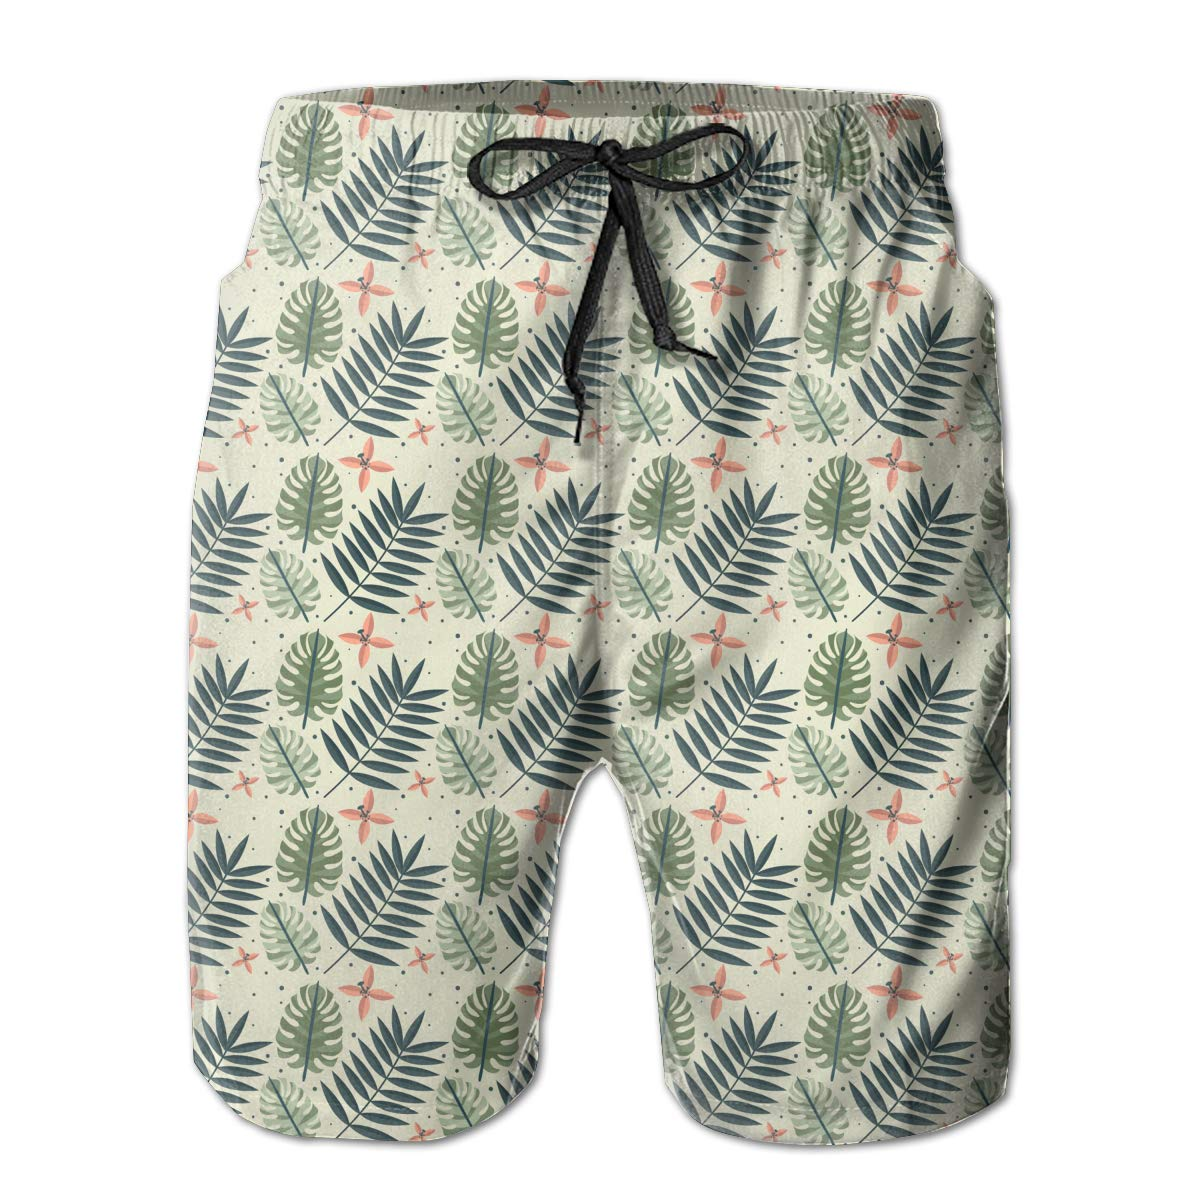 JF-X Palm Tree Leaves Mens Summer Beach Surf Board Shorts Quick Dry Swimming Trunks Casual Loose Sleep Short Pants